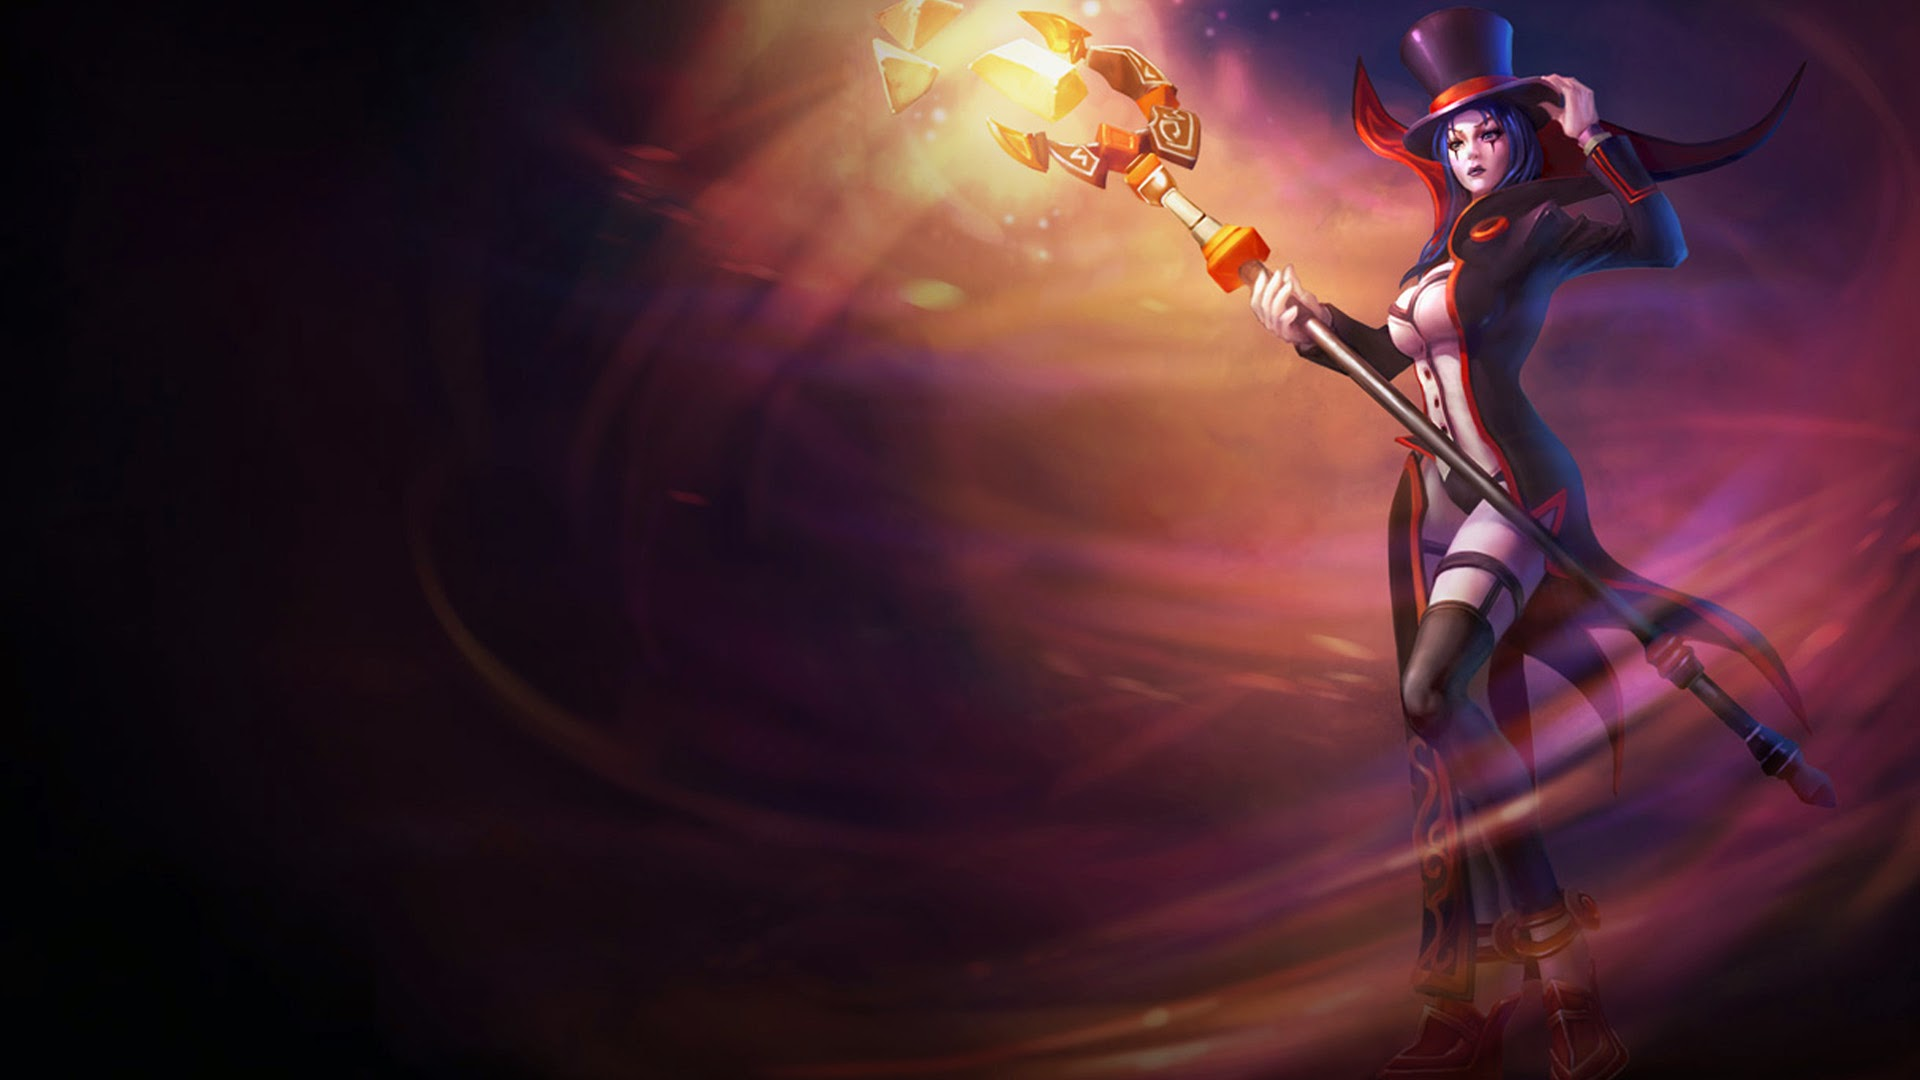 Prestigious LeBlanc Old Skin wallpaper